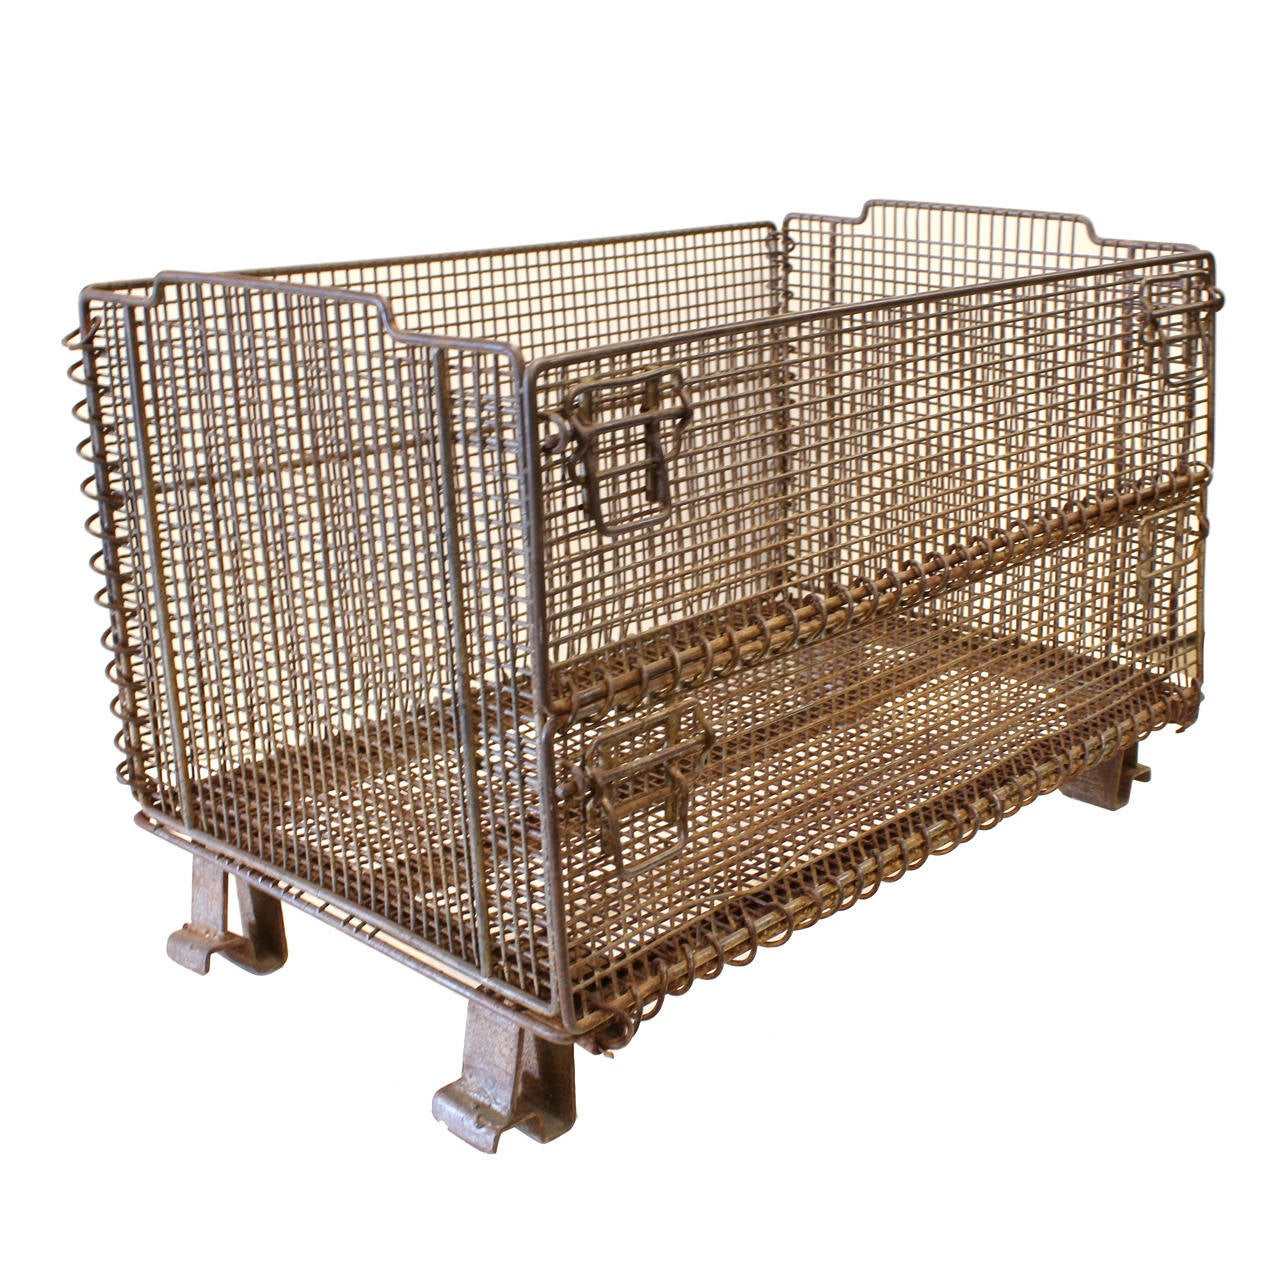 large original american industrial collapsible wire baskets for sale at 1stdibs. Black Bedroom Furniture Sets. Home Design Ideas